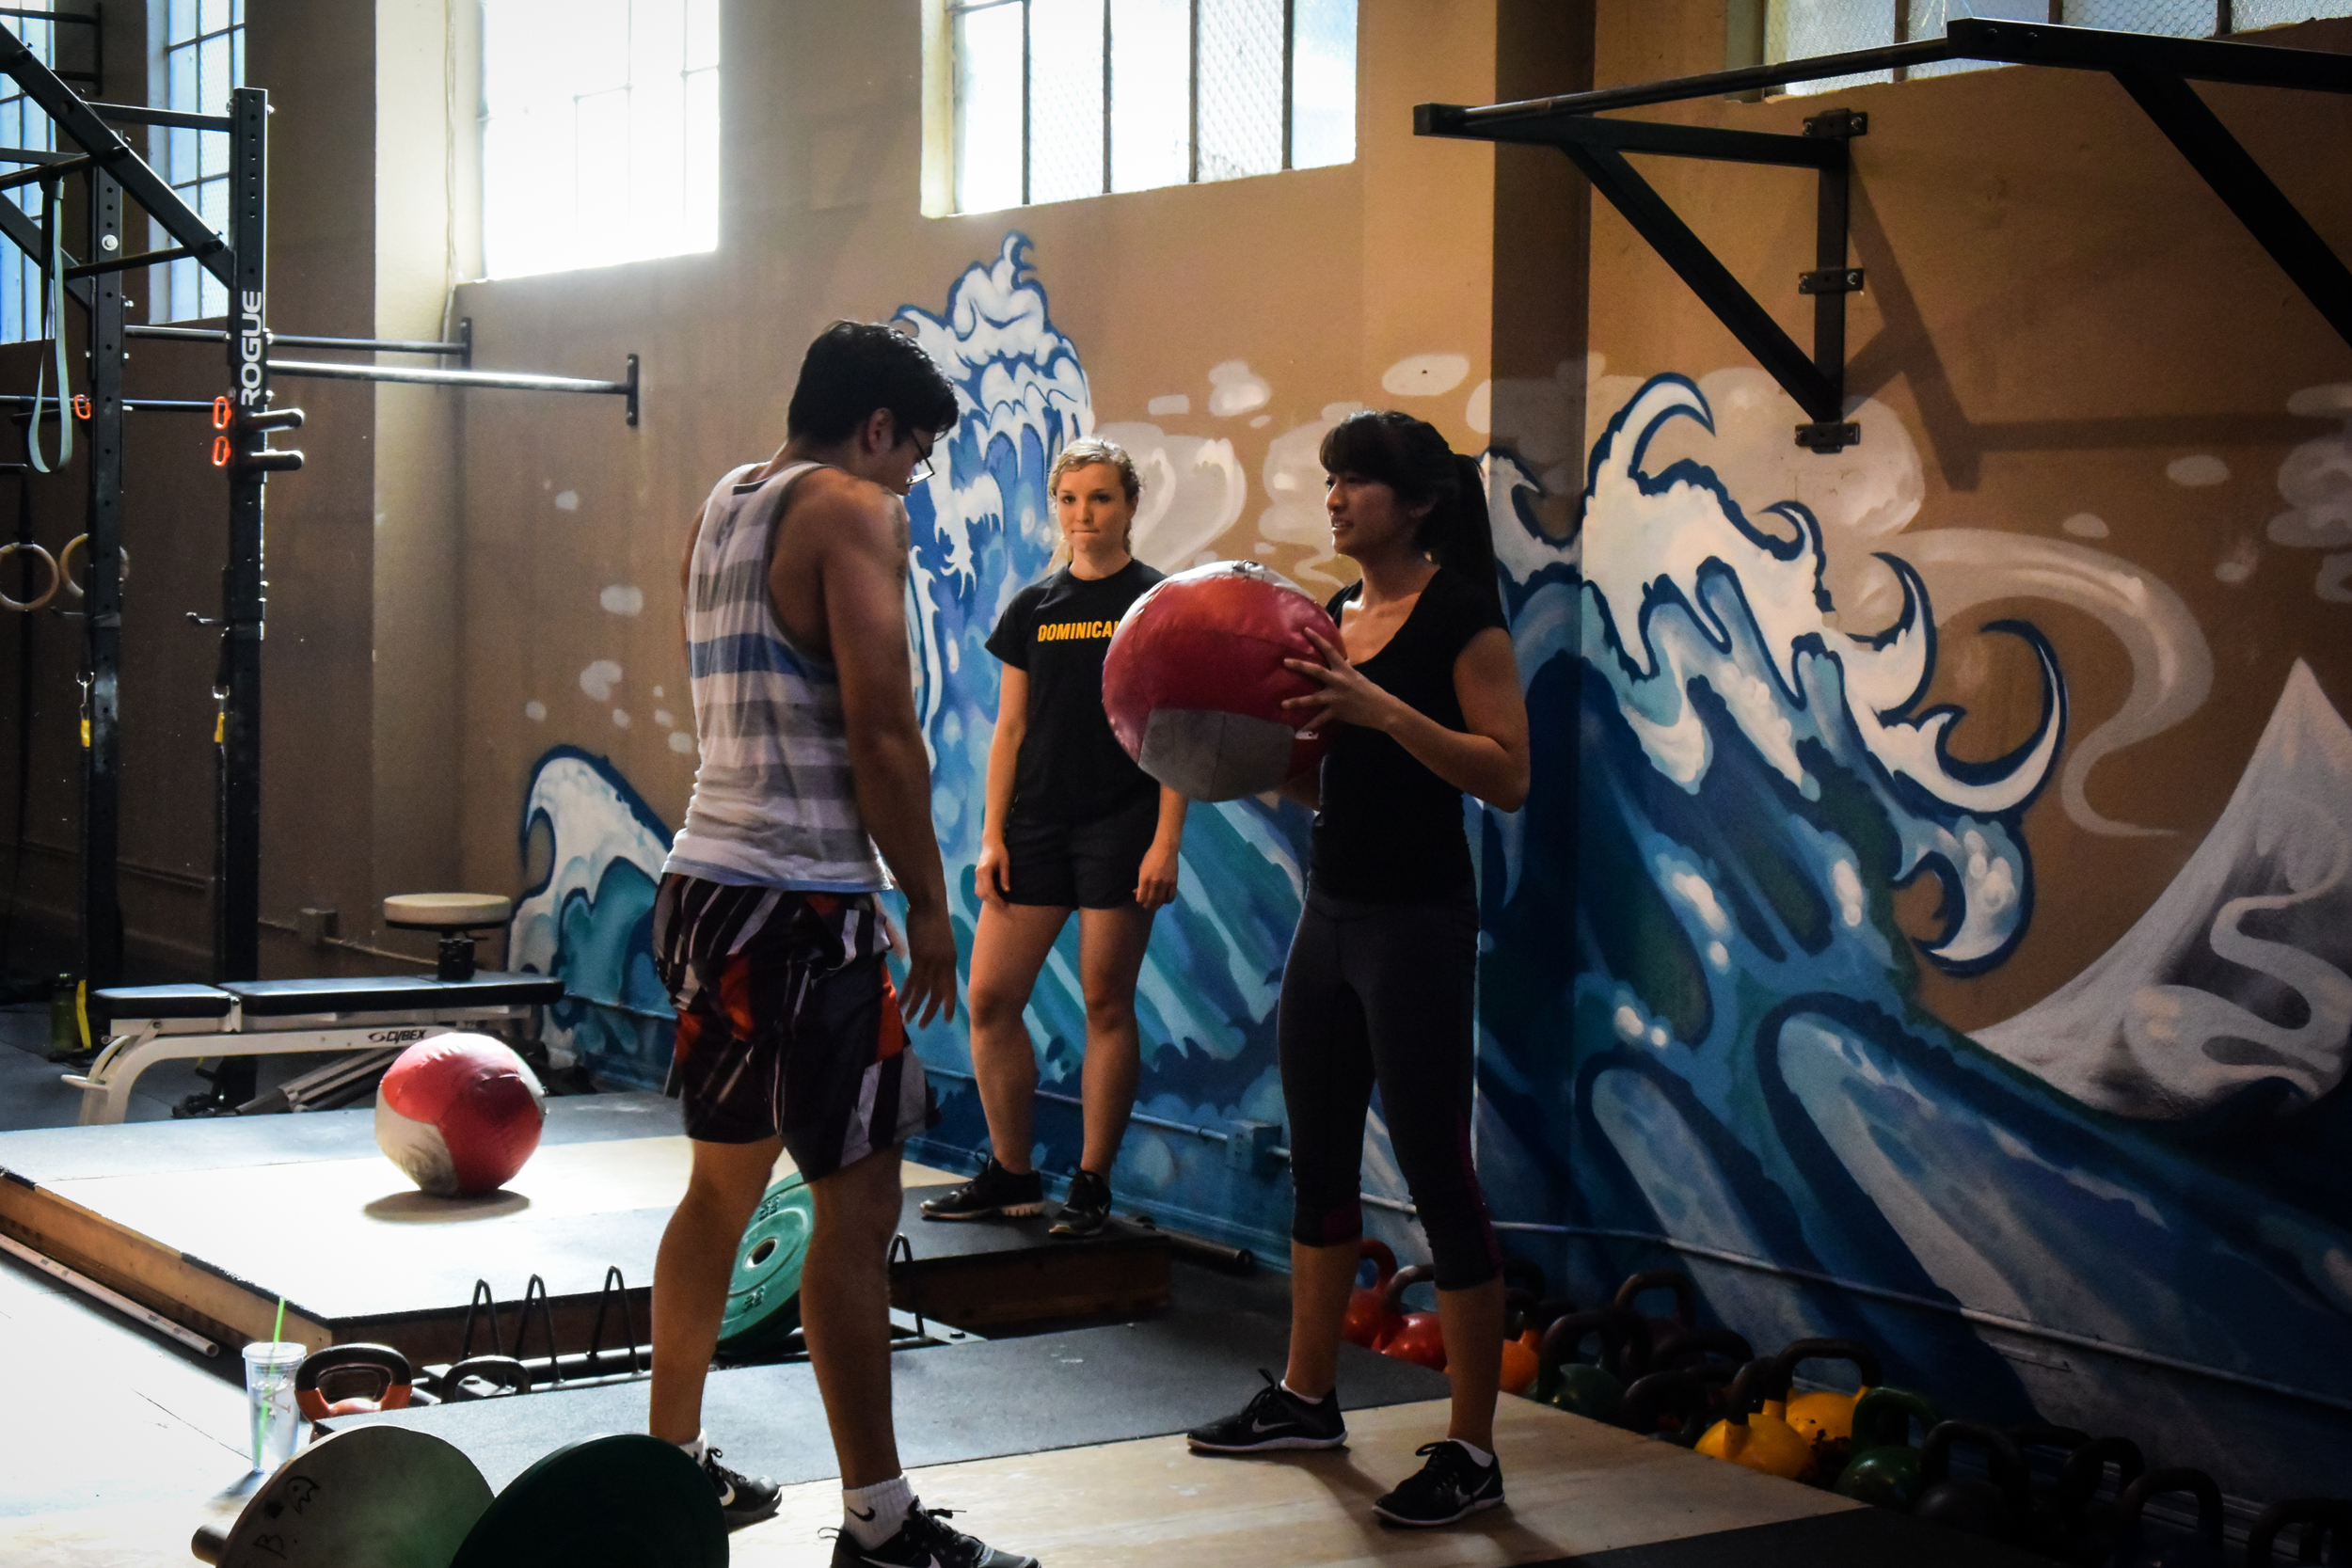 """Before throwingballs to the wall a-la """"Karen"""" WOD, we first learn how to  clean  a medball! Thank you, coach Raymond for introducing sound CrossFit fundamentals to new CFSV athletes!"""